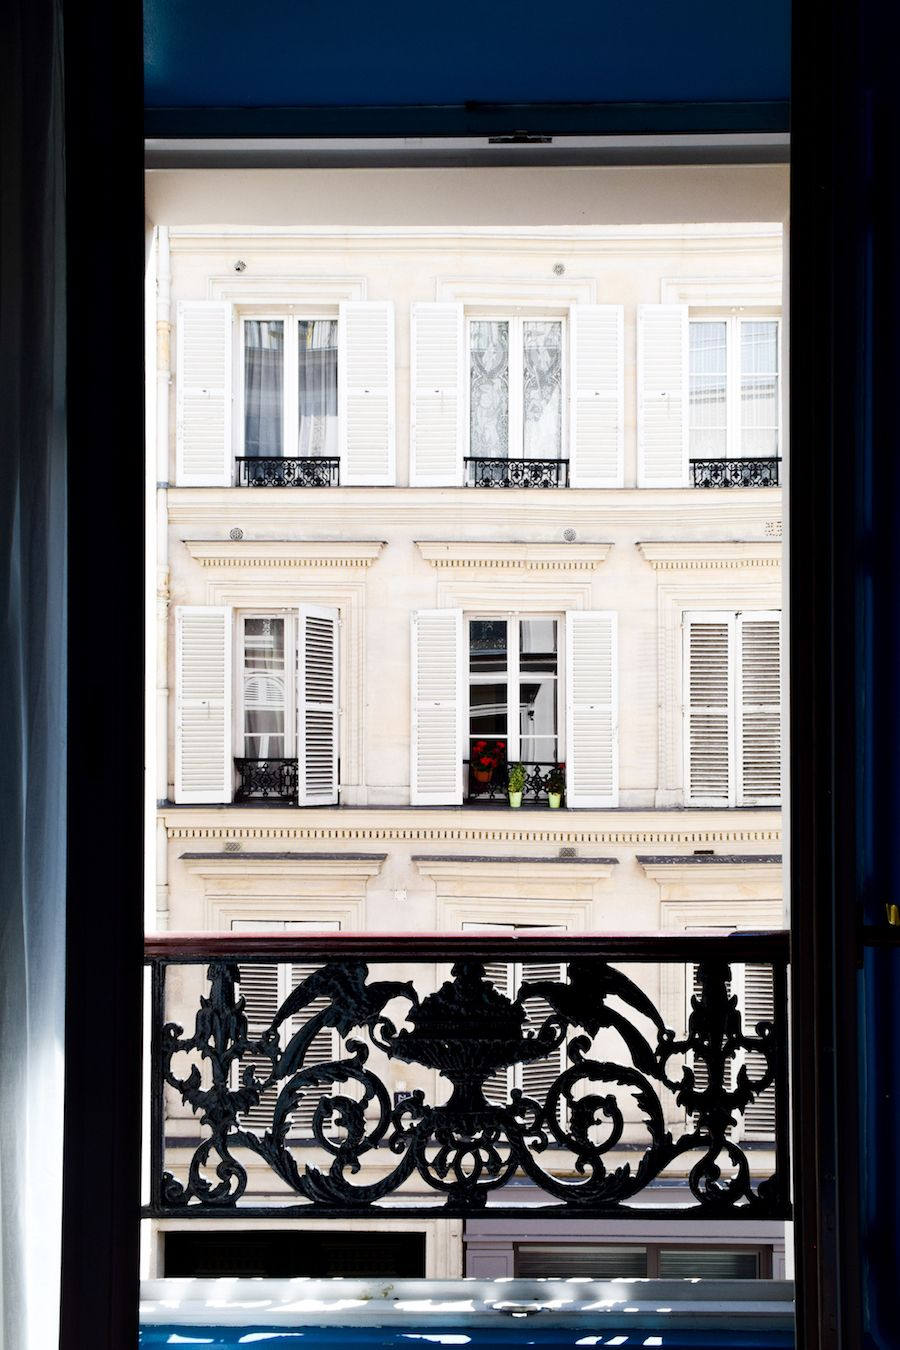 Hotel Grand Amour, Paris